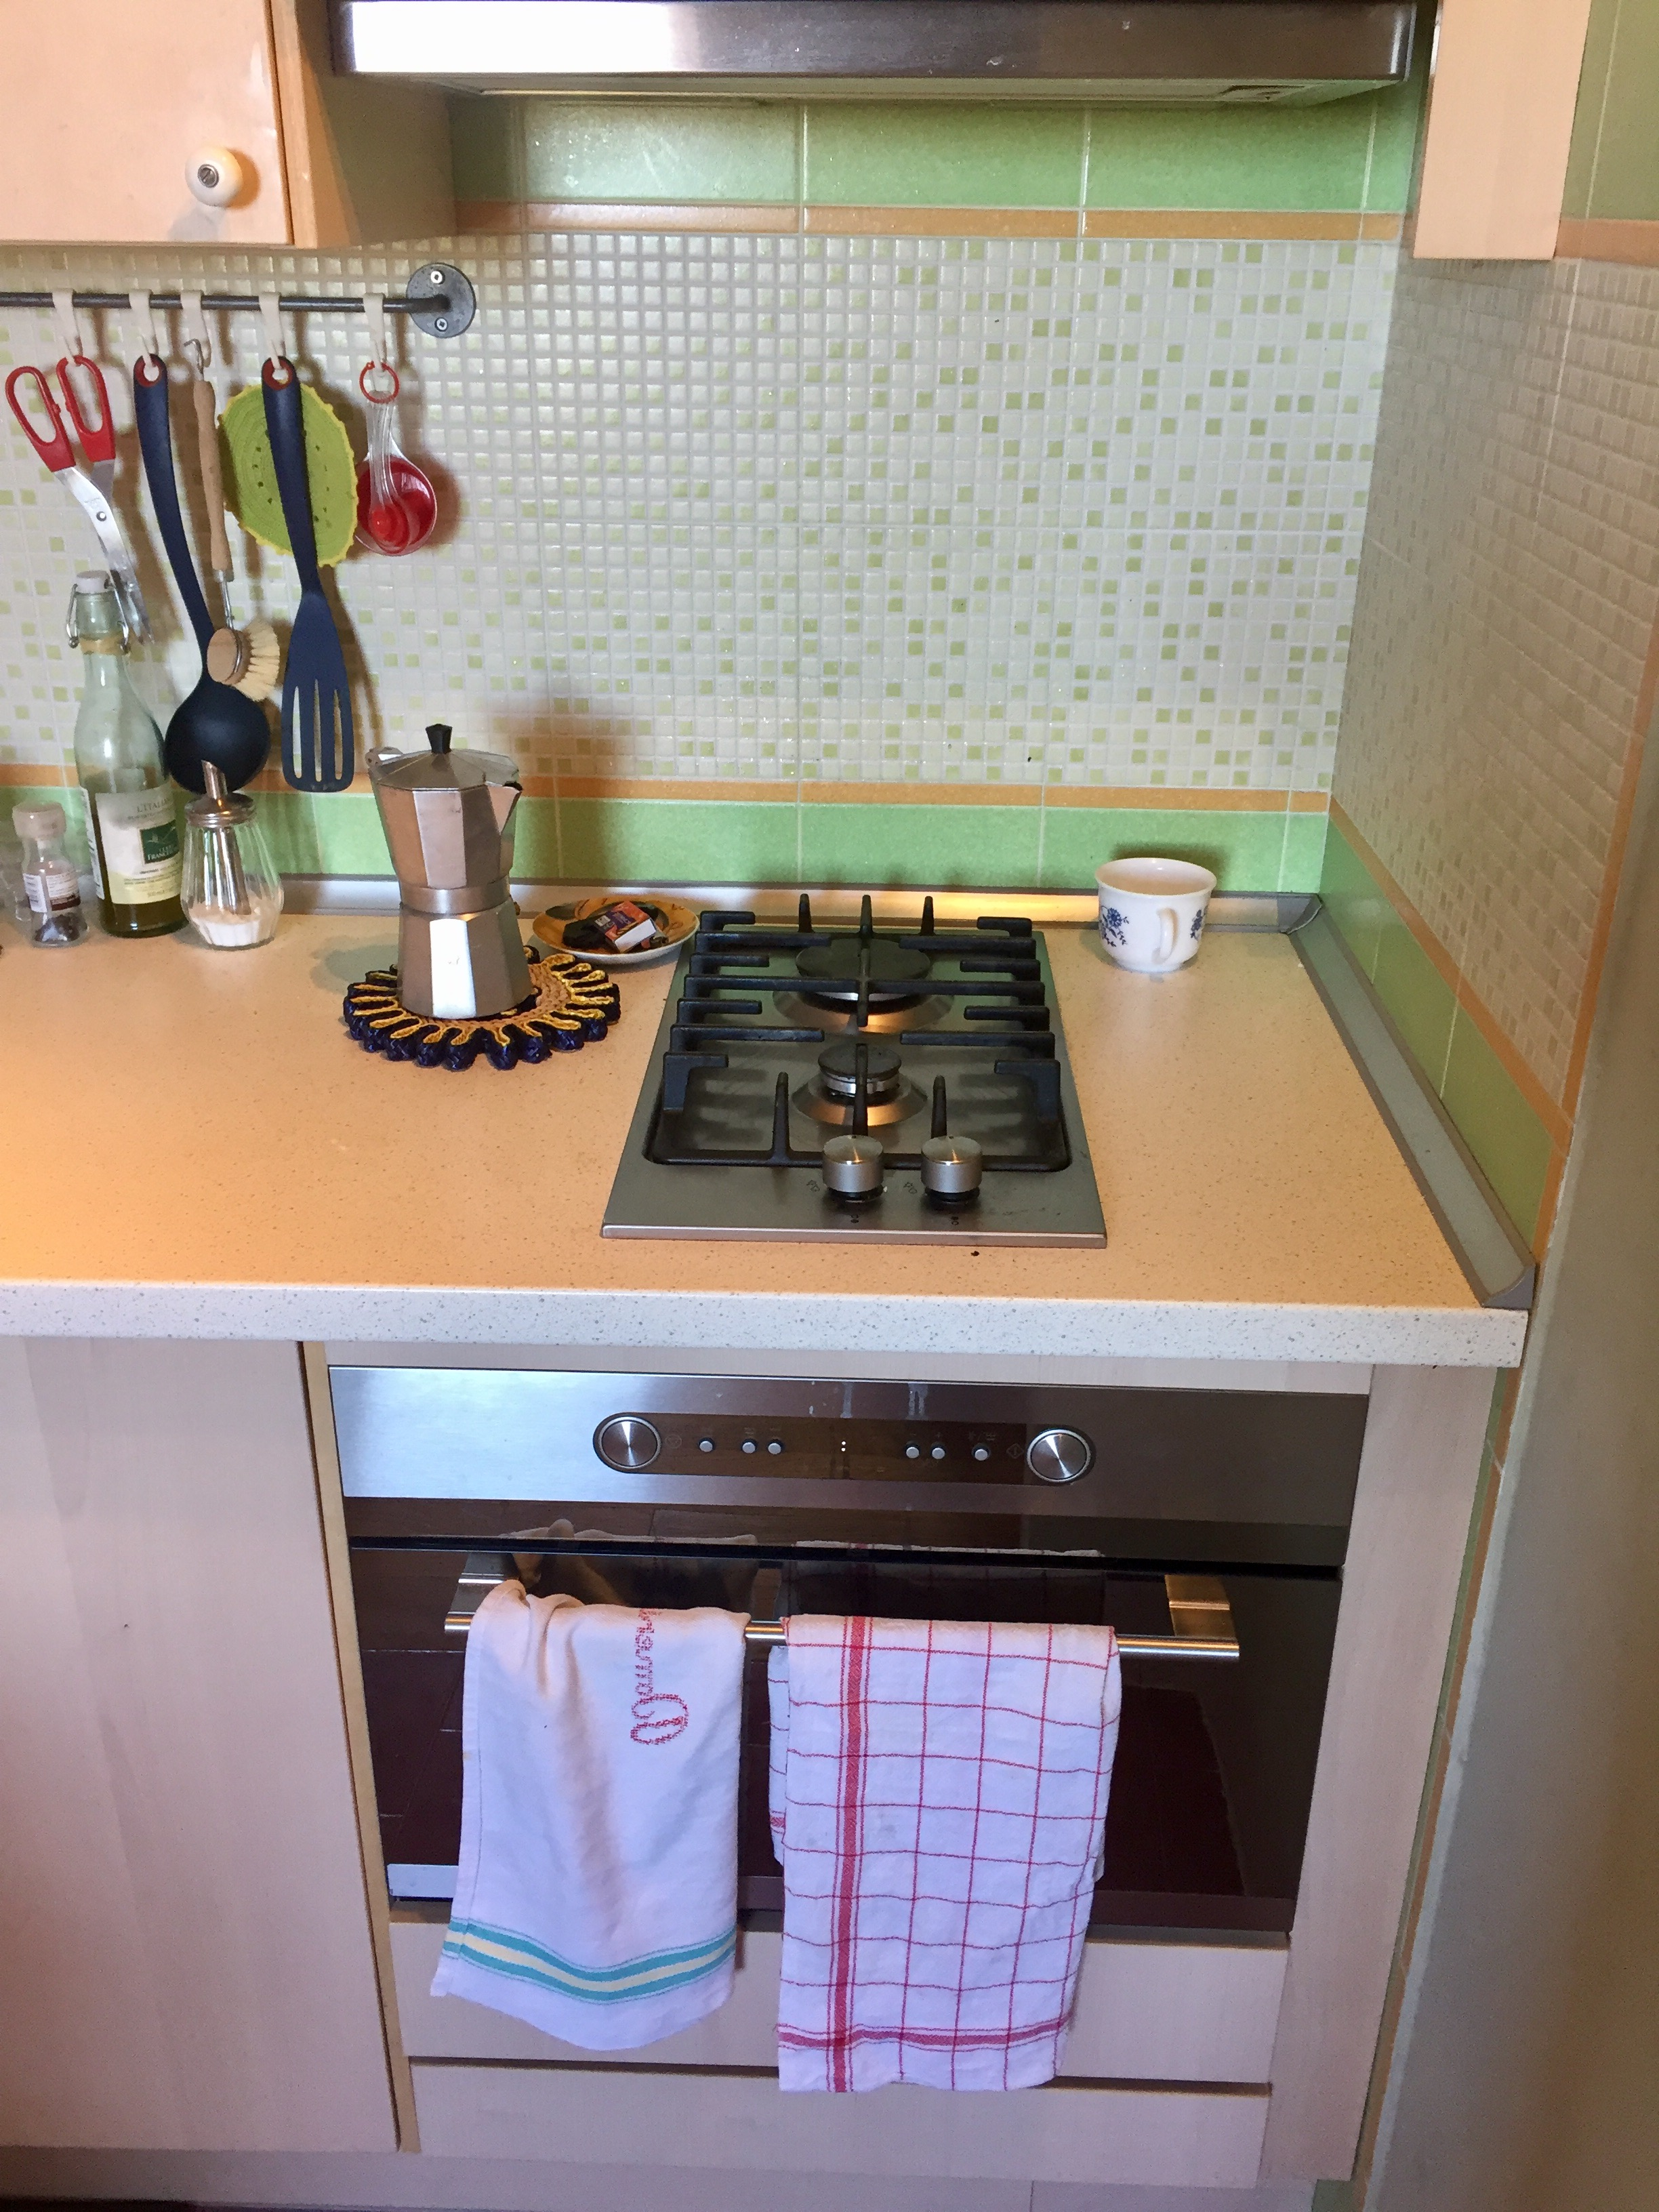 Our kitchen in Tuscany. Note the coffee pot!